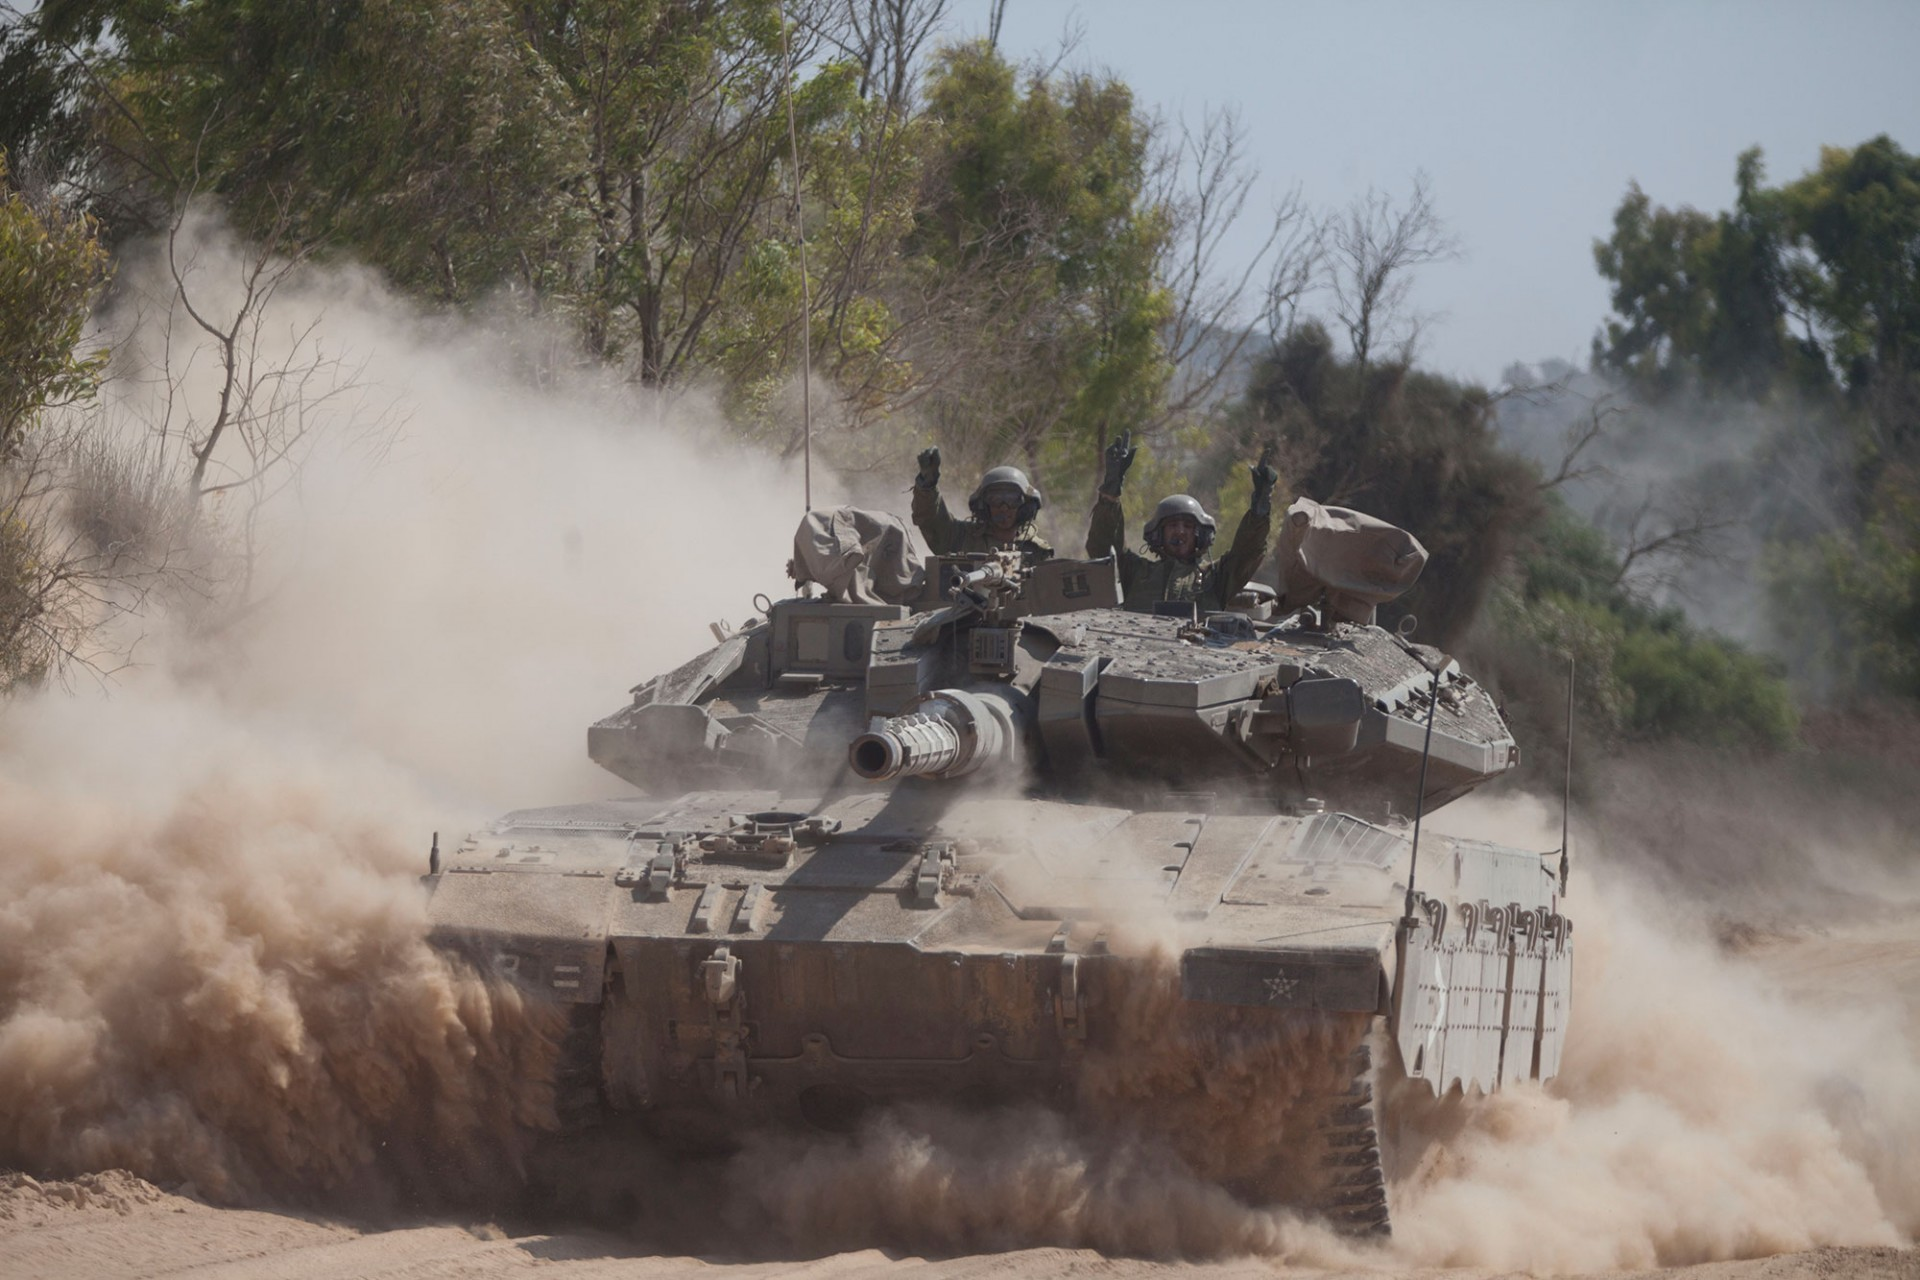 An Israeli tank moves along the border on July 20, 2014 on the Israel/Gaza Strip border.